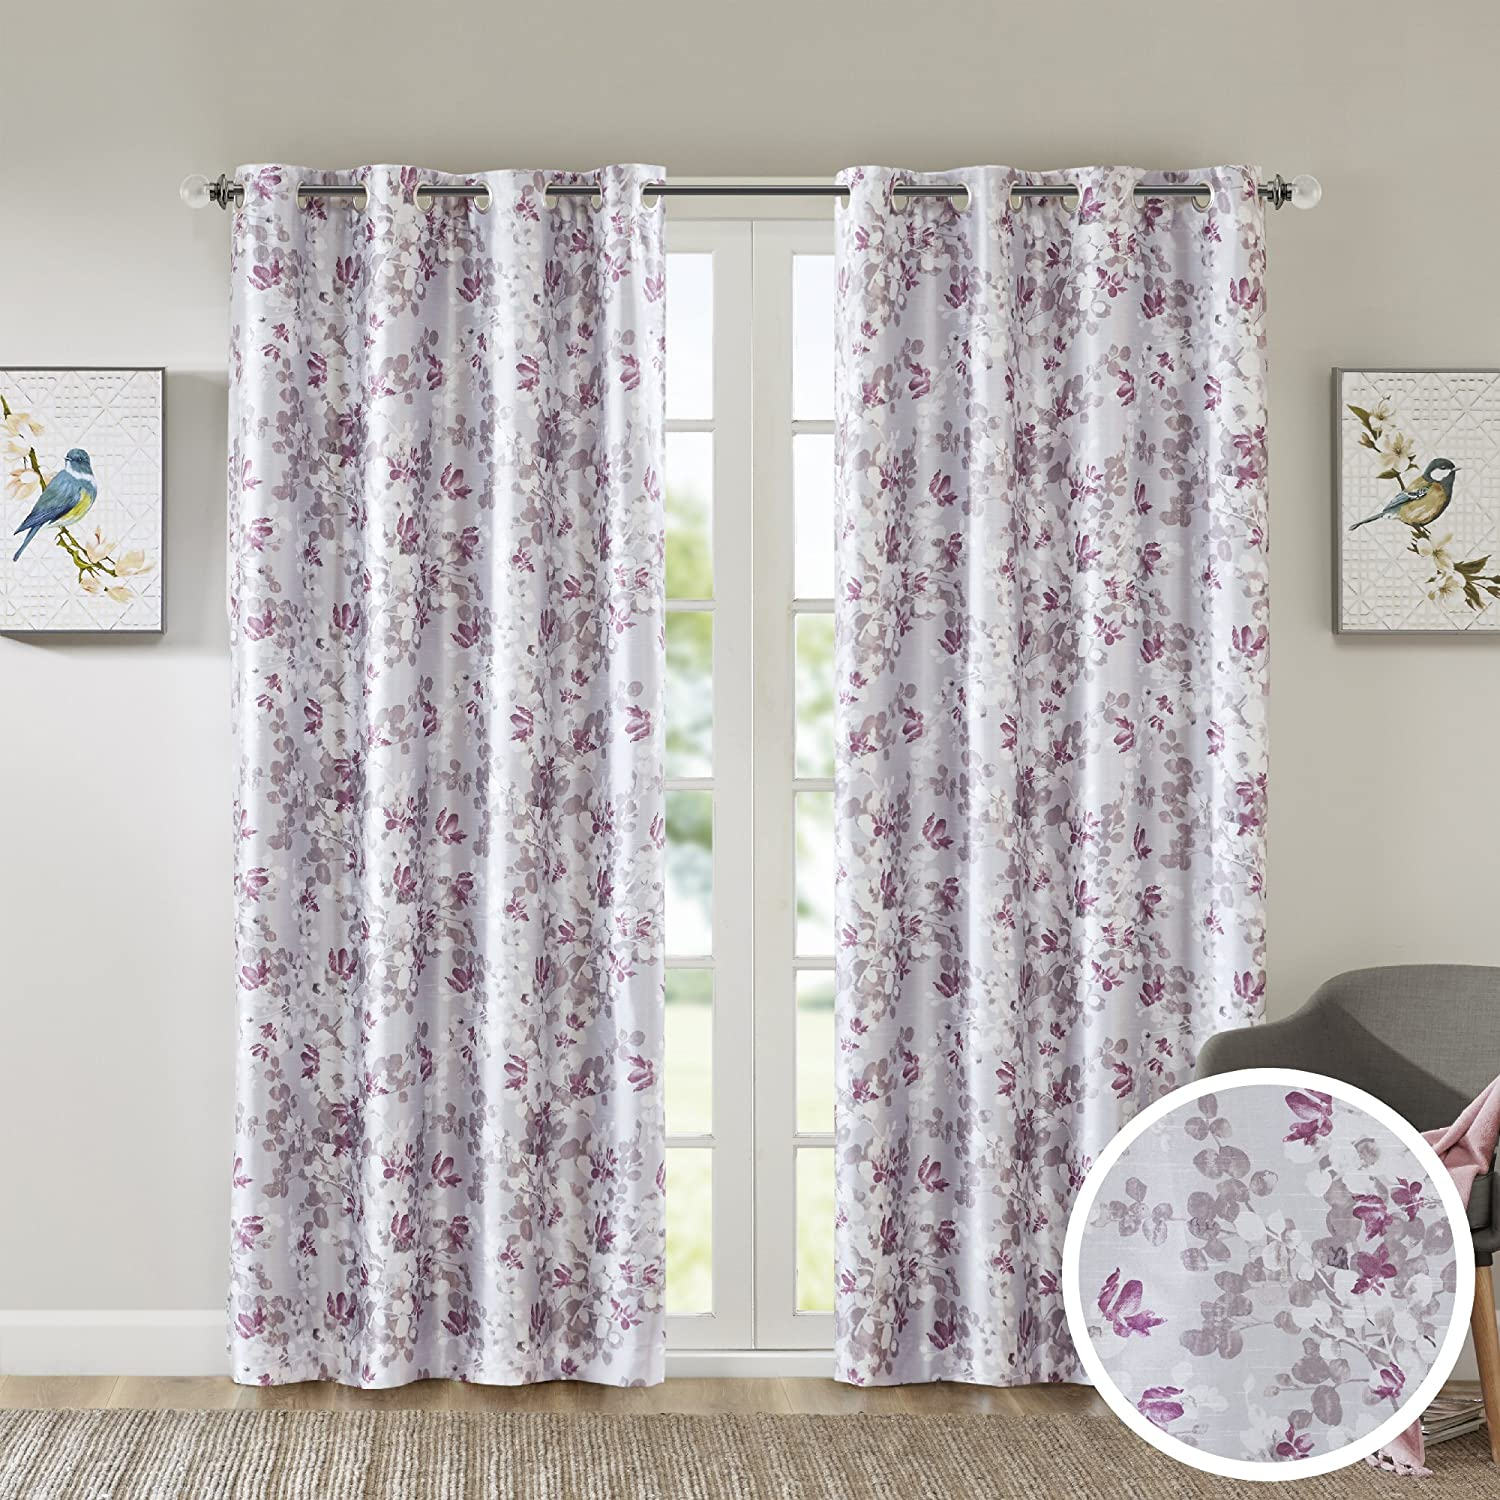 Amazon.com: Room Darkening Curtains for Bedroom - Printed Floral ...